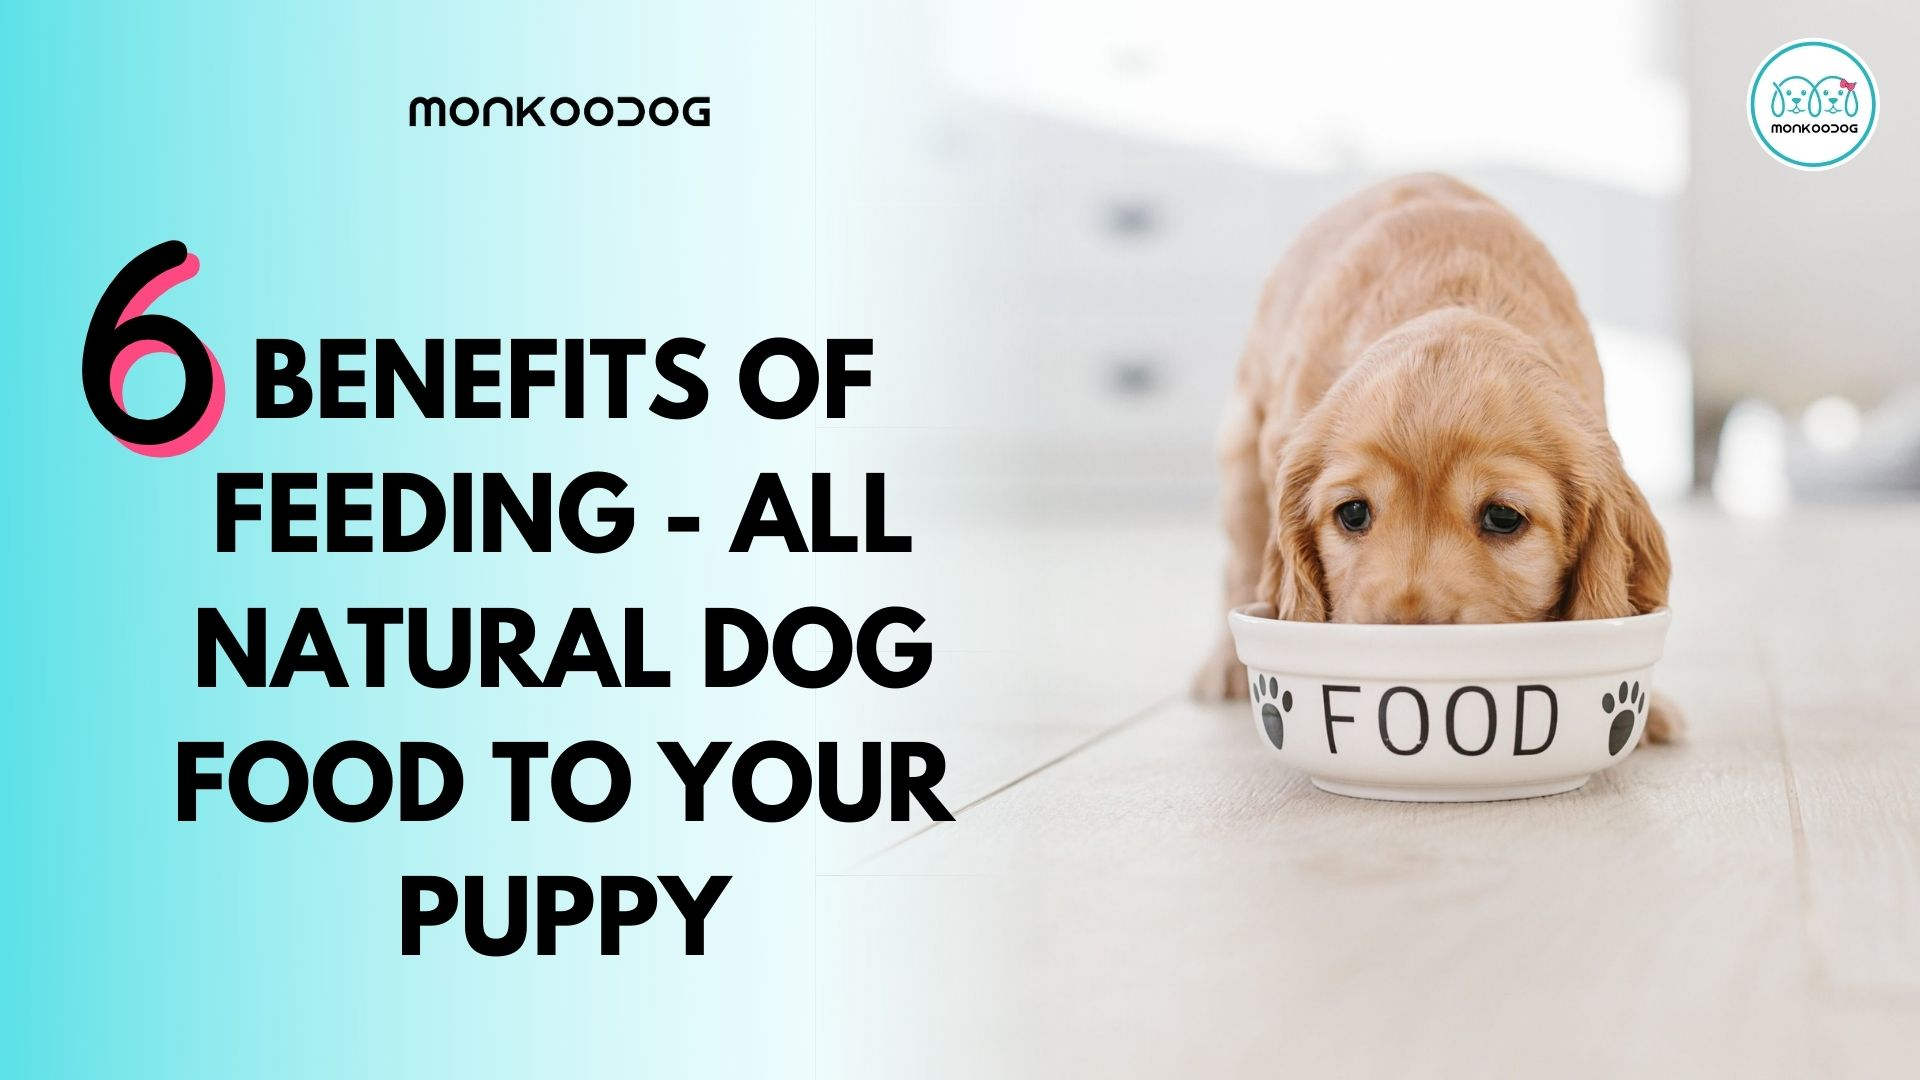 6 benefits of feeding - all natural dog food to your puppy